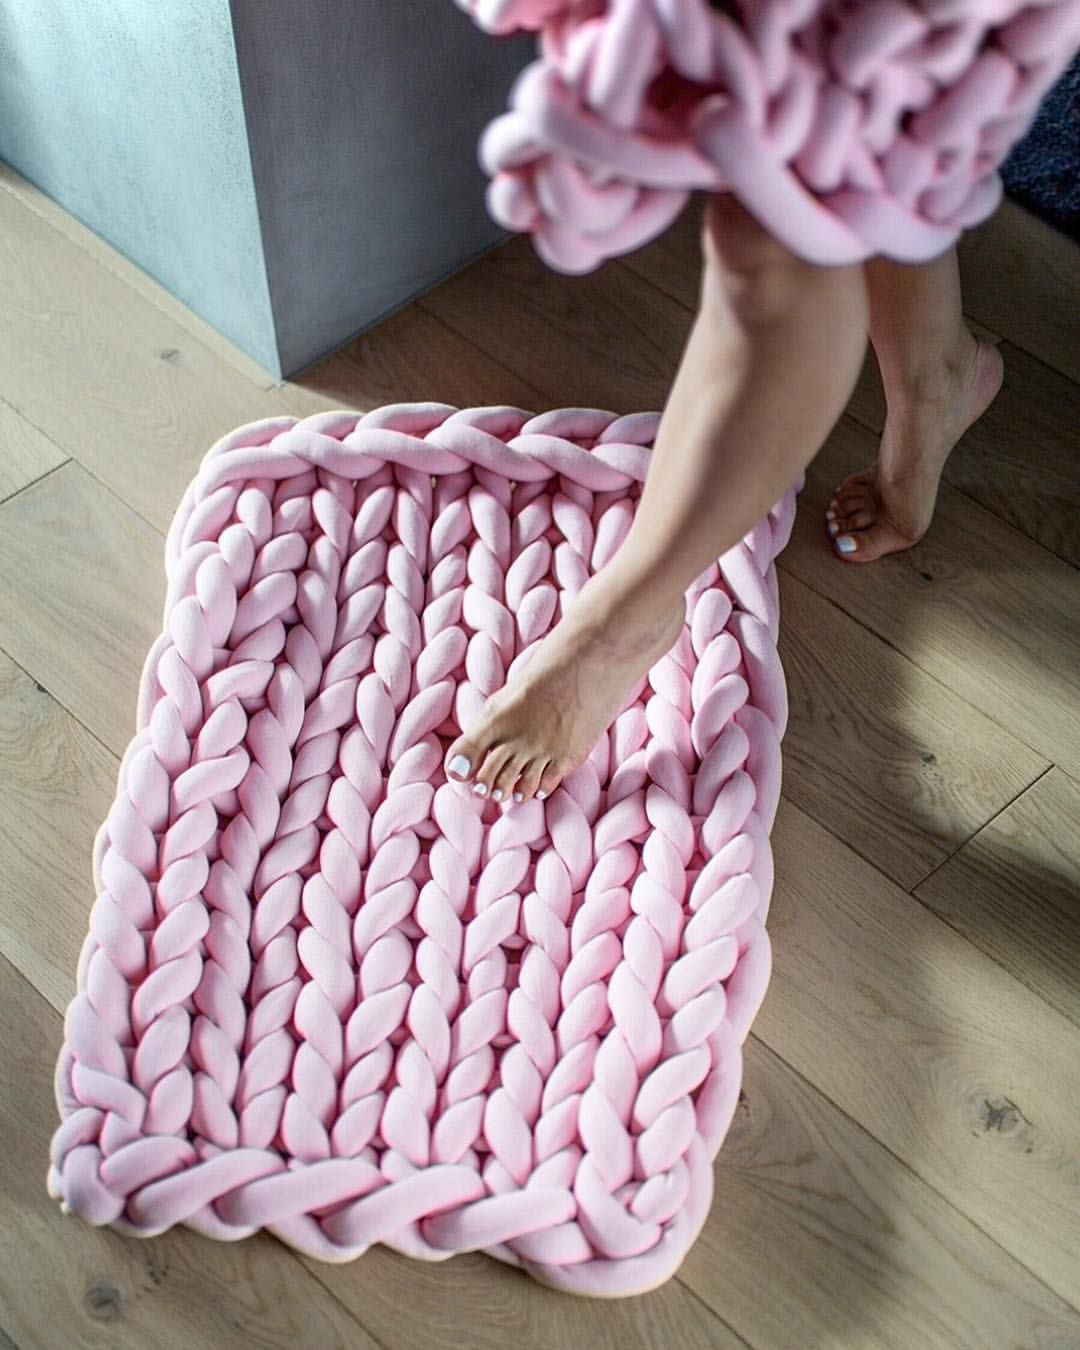 Braid Mat DIY Kit (With images) Super chunky knit